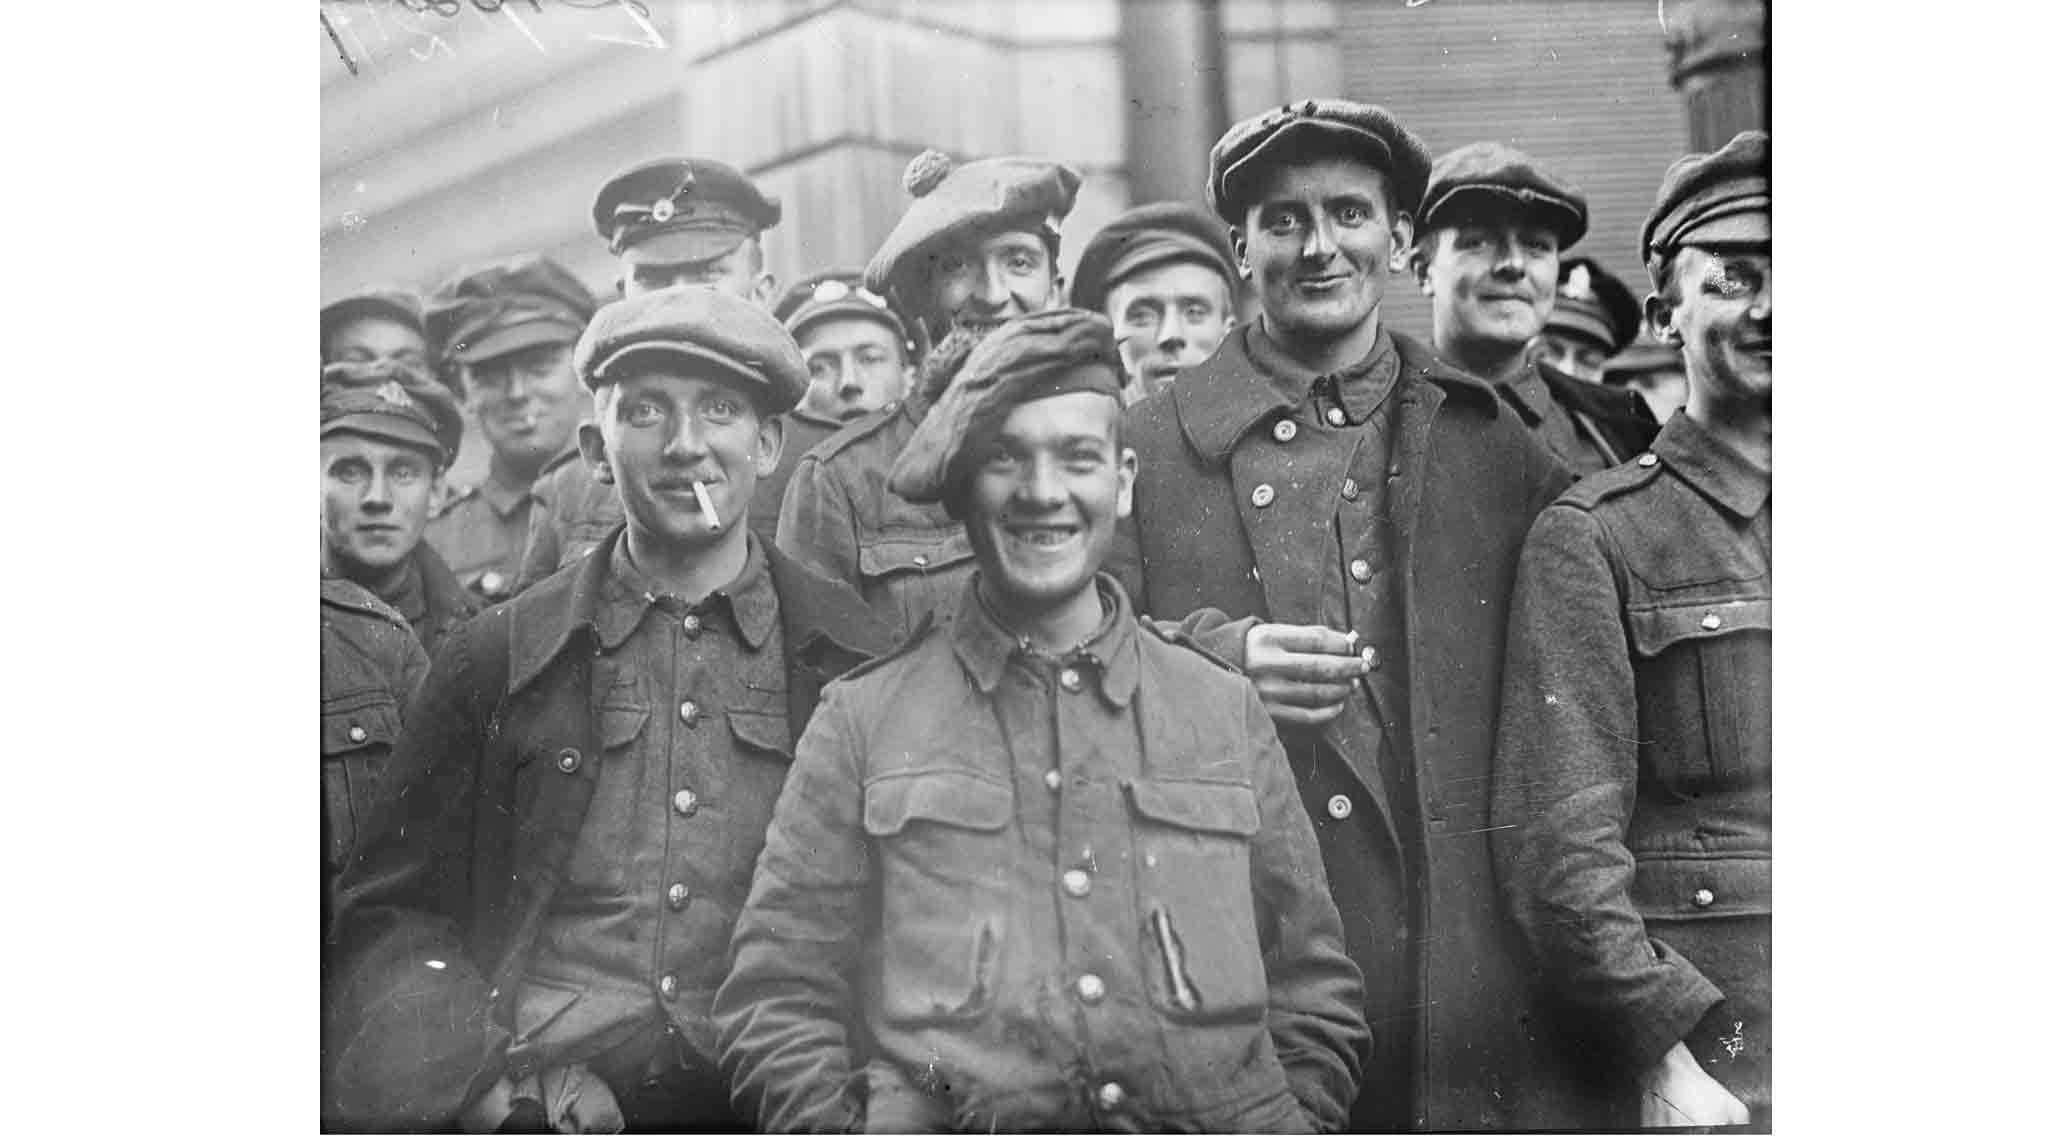 Renewal: Life After the First World War in Photographs